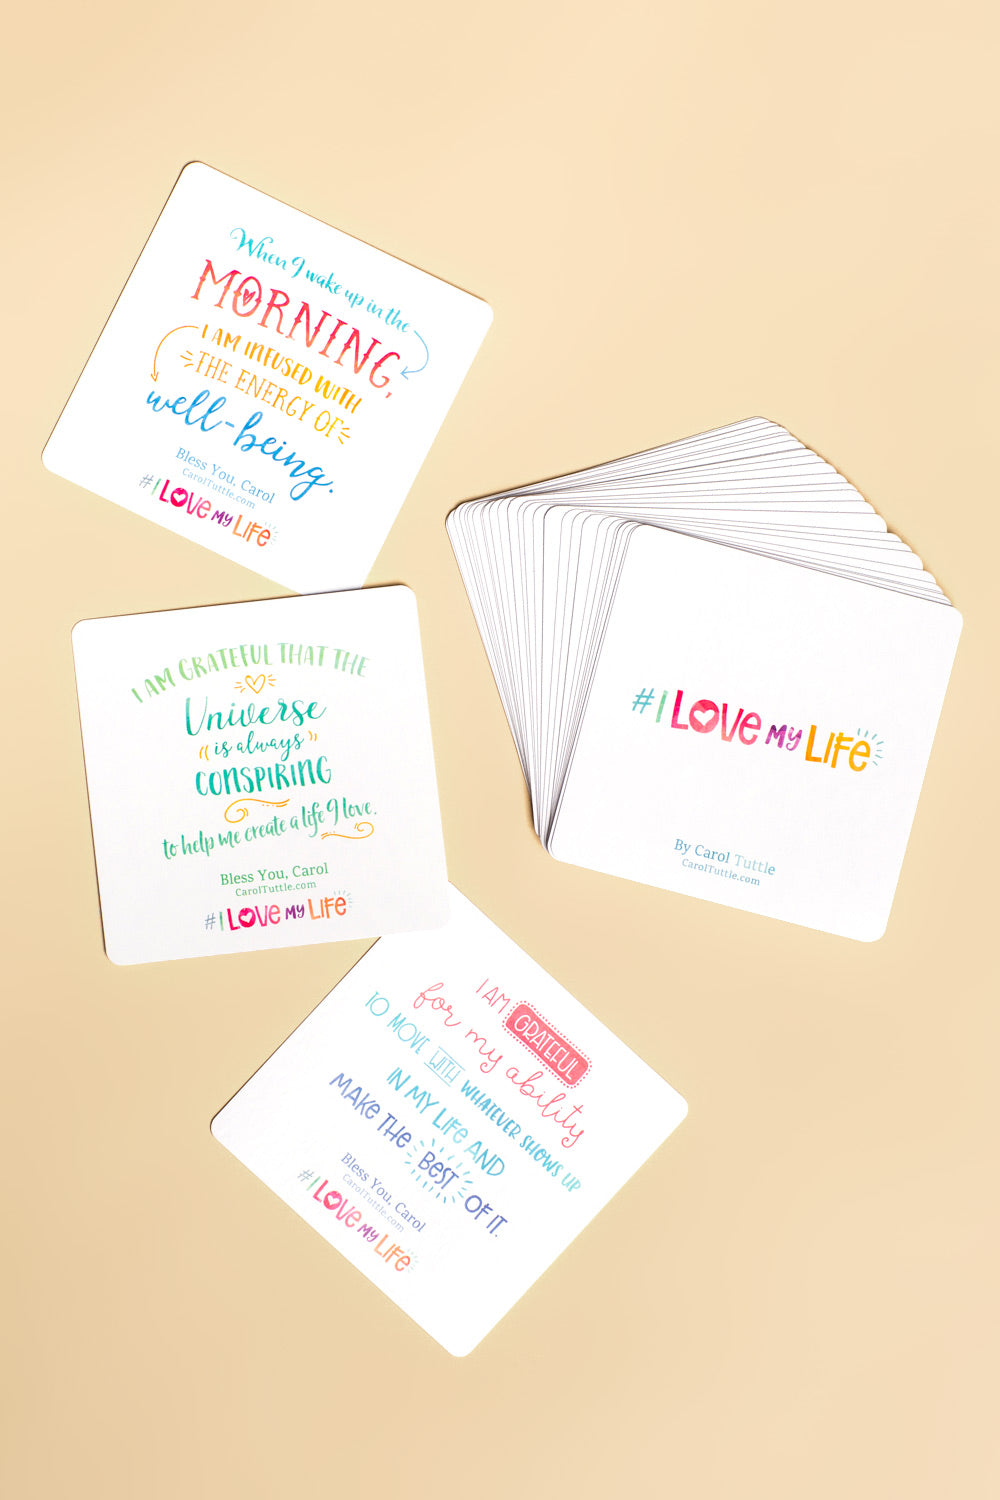 I Love My Life Affirmation Cards